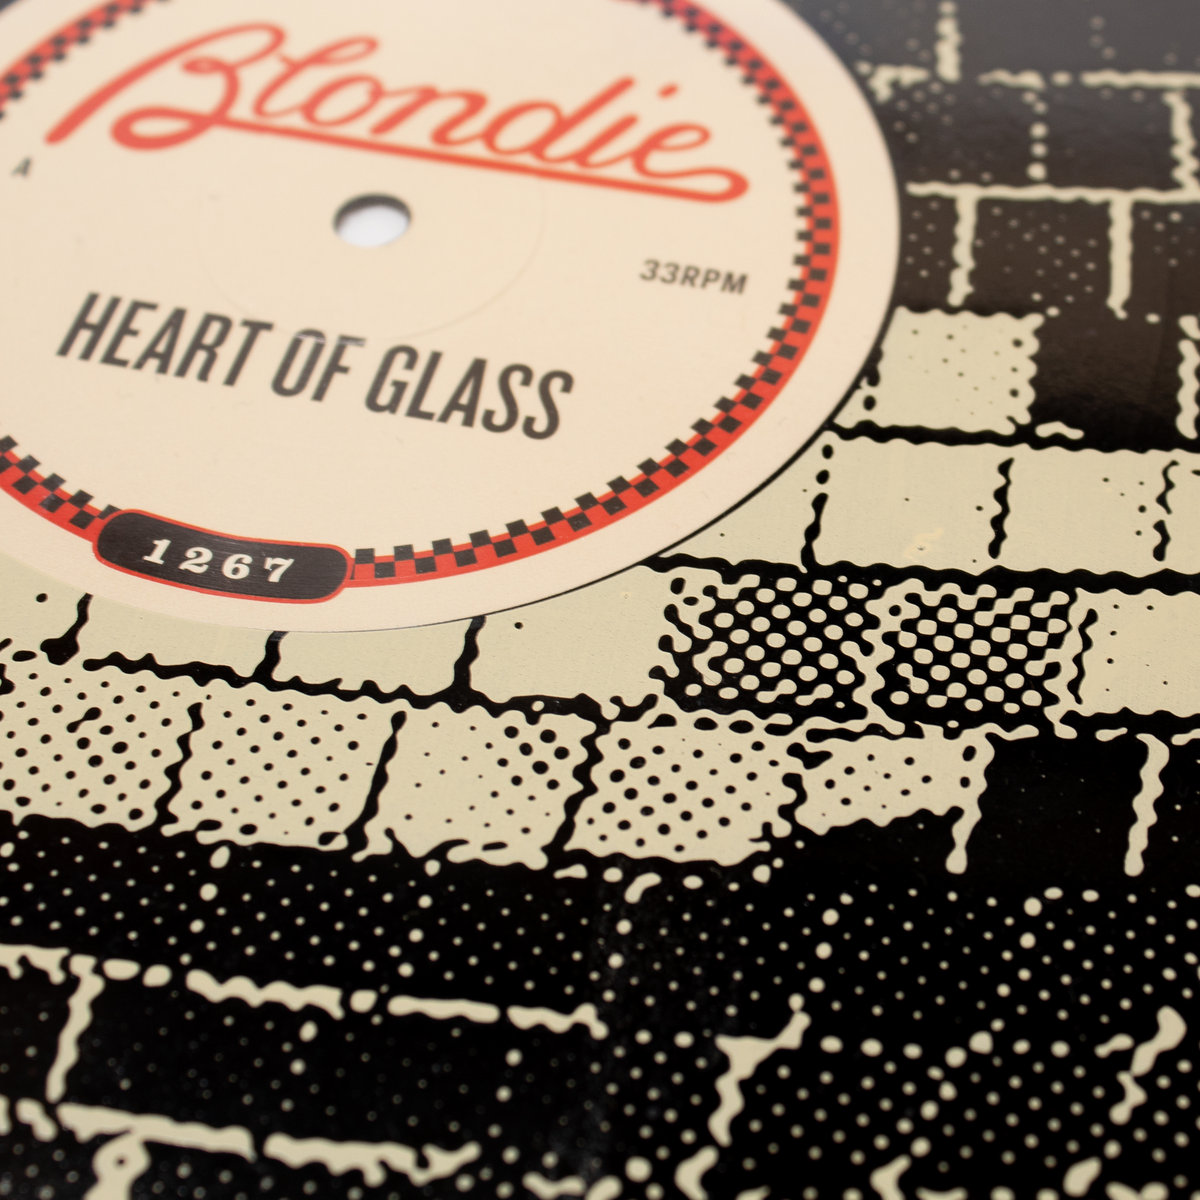 93107a6ab204 Includes unlimited streaming of Heart of Glass via the free Bandcamp app